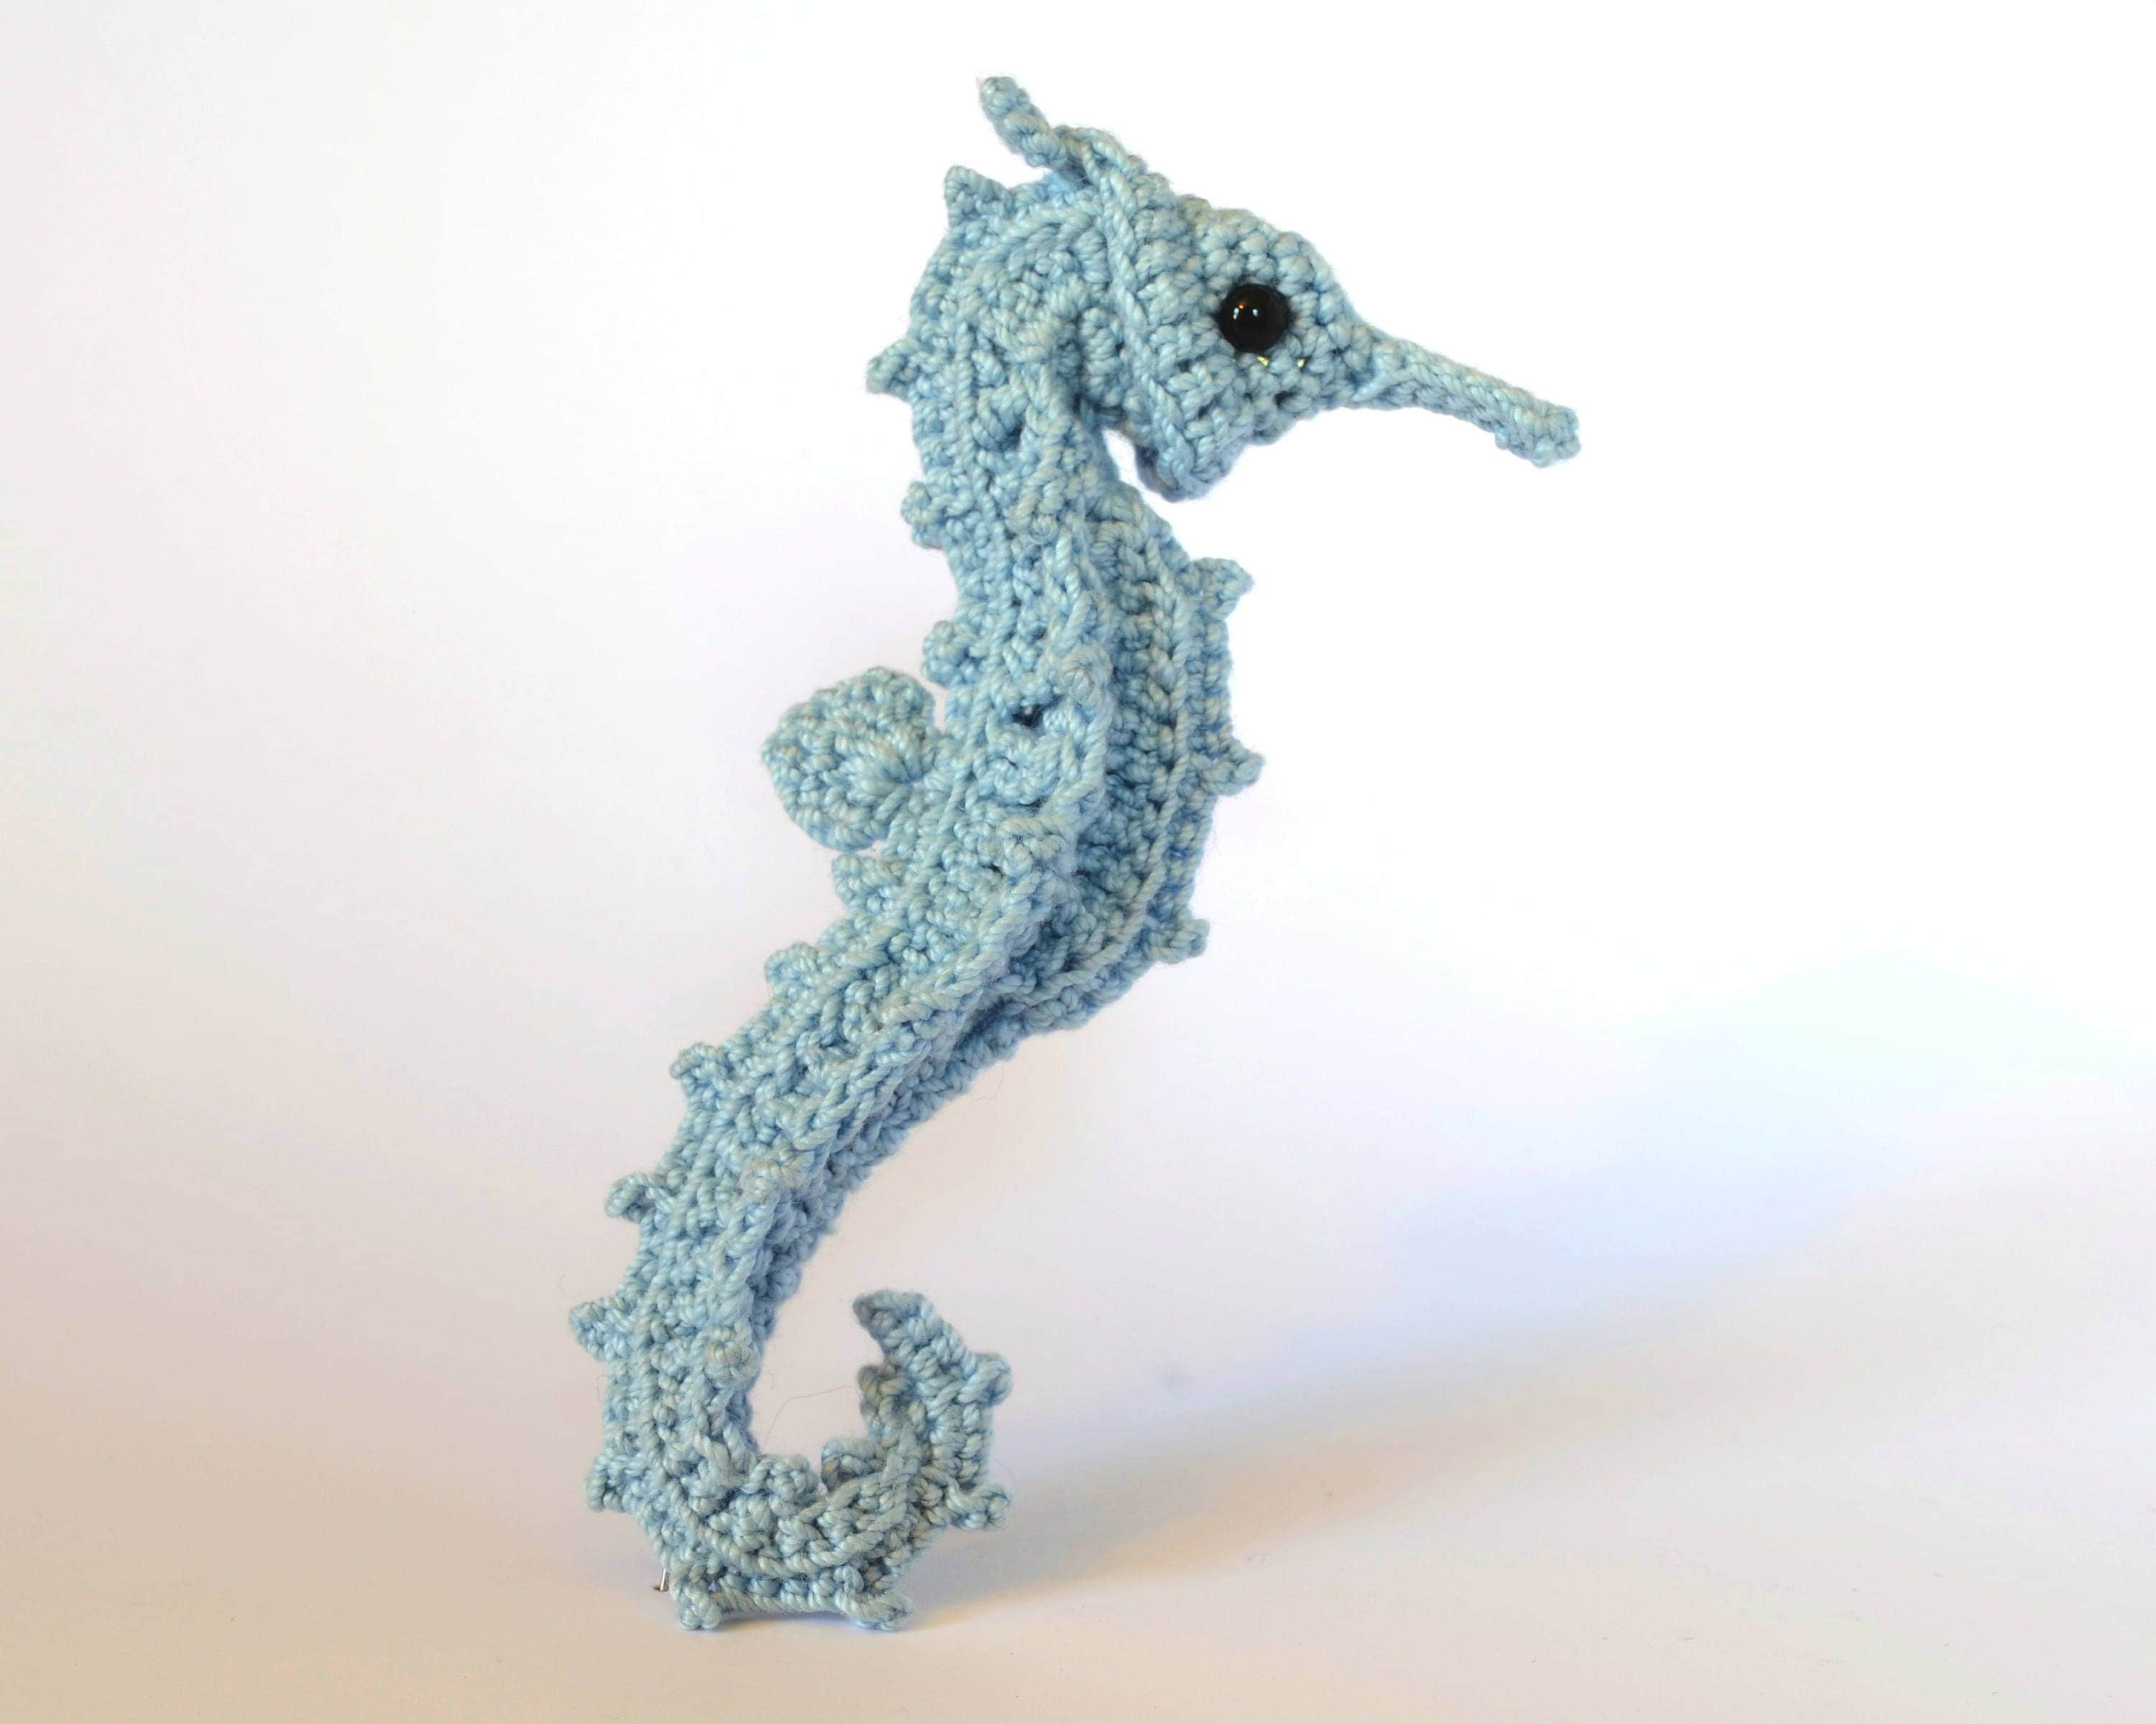 Crochet pattern post modern post stitch seahorse with variation this is a digital file bankloansurffo Image collections